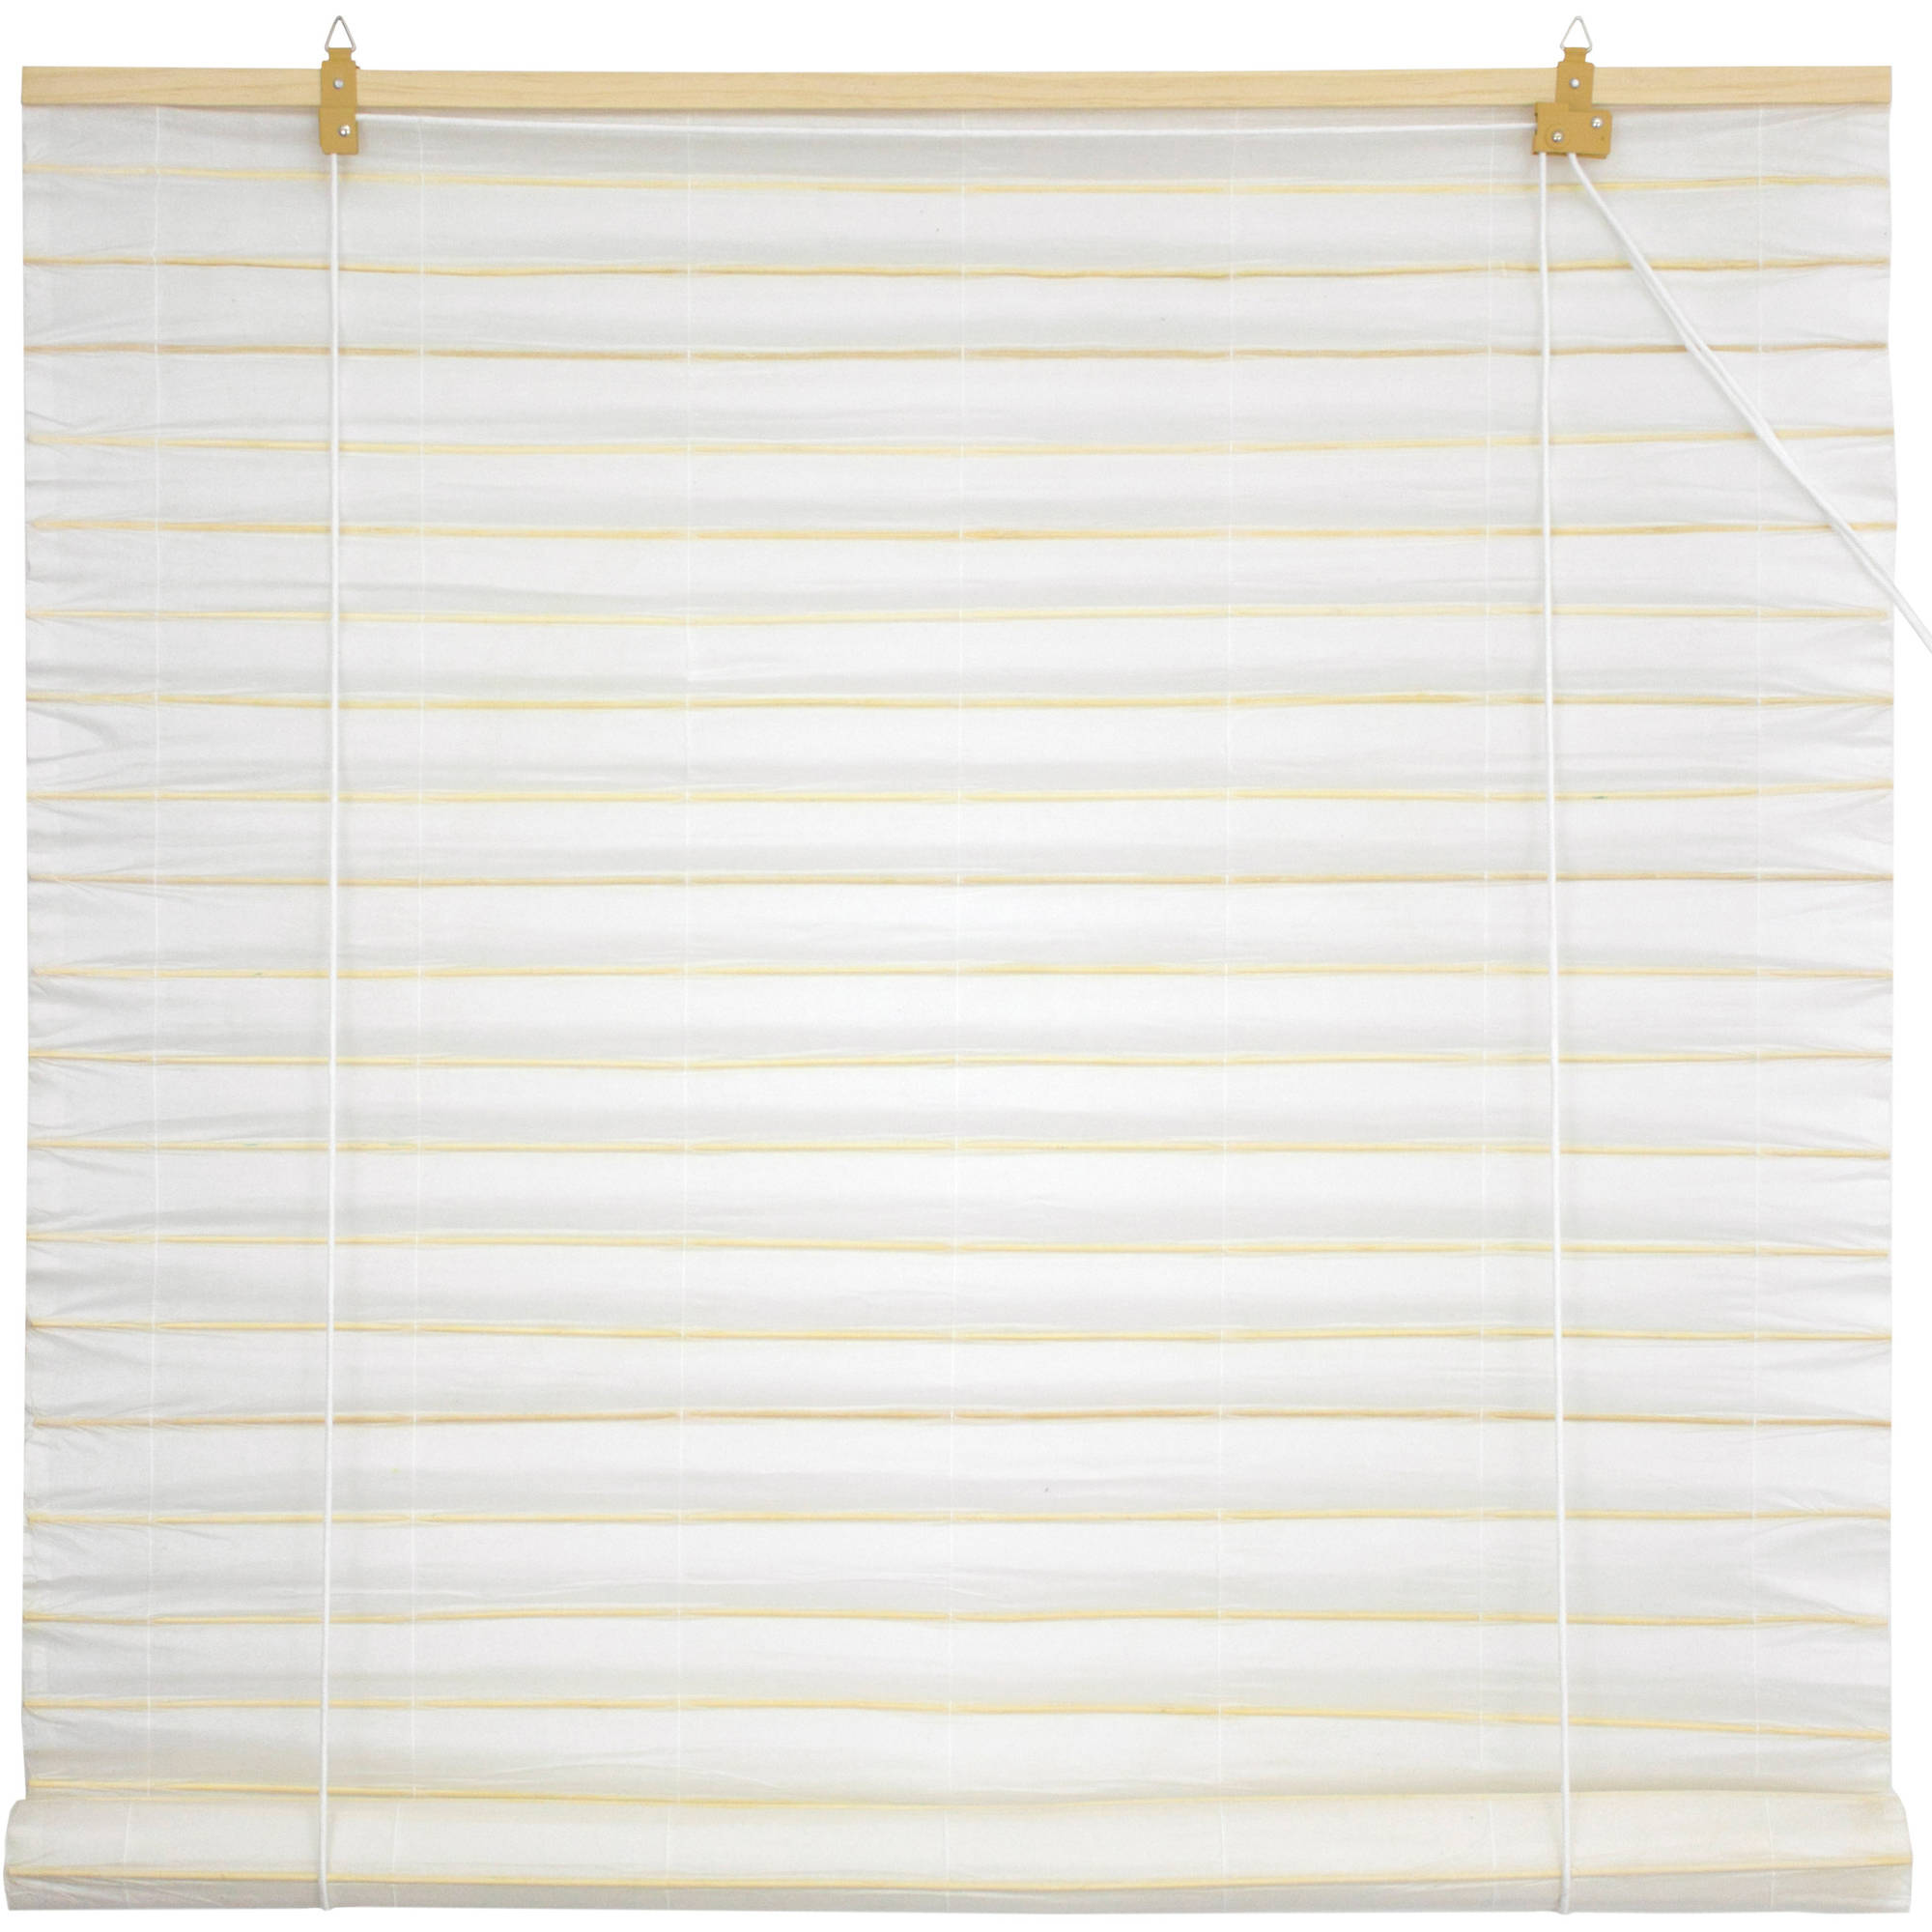 Shoji Paper Roll Up Blinds, White